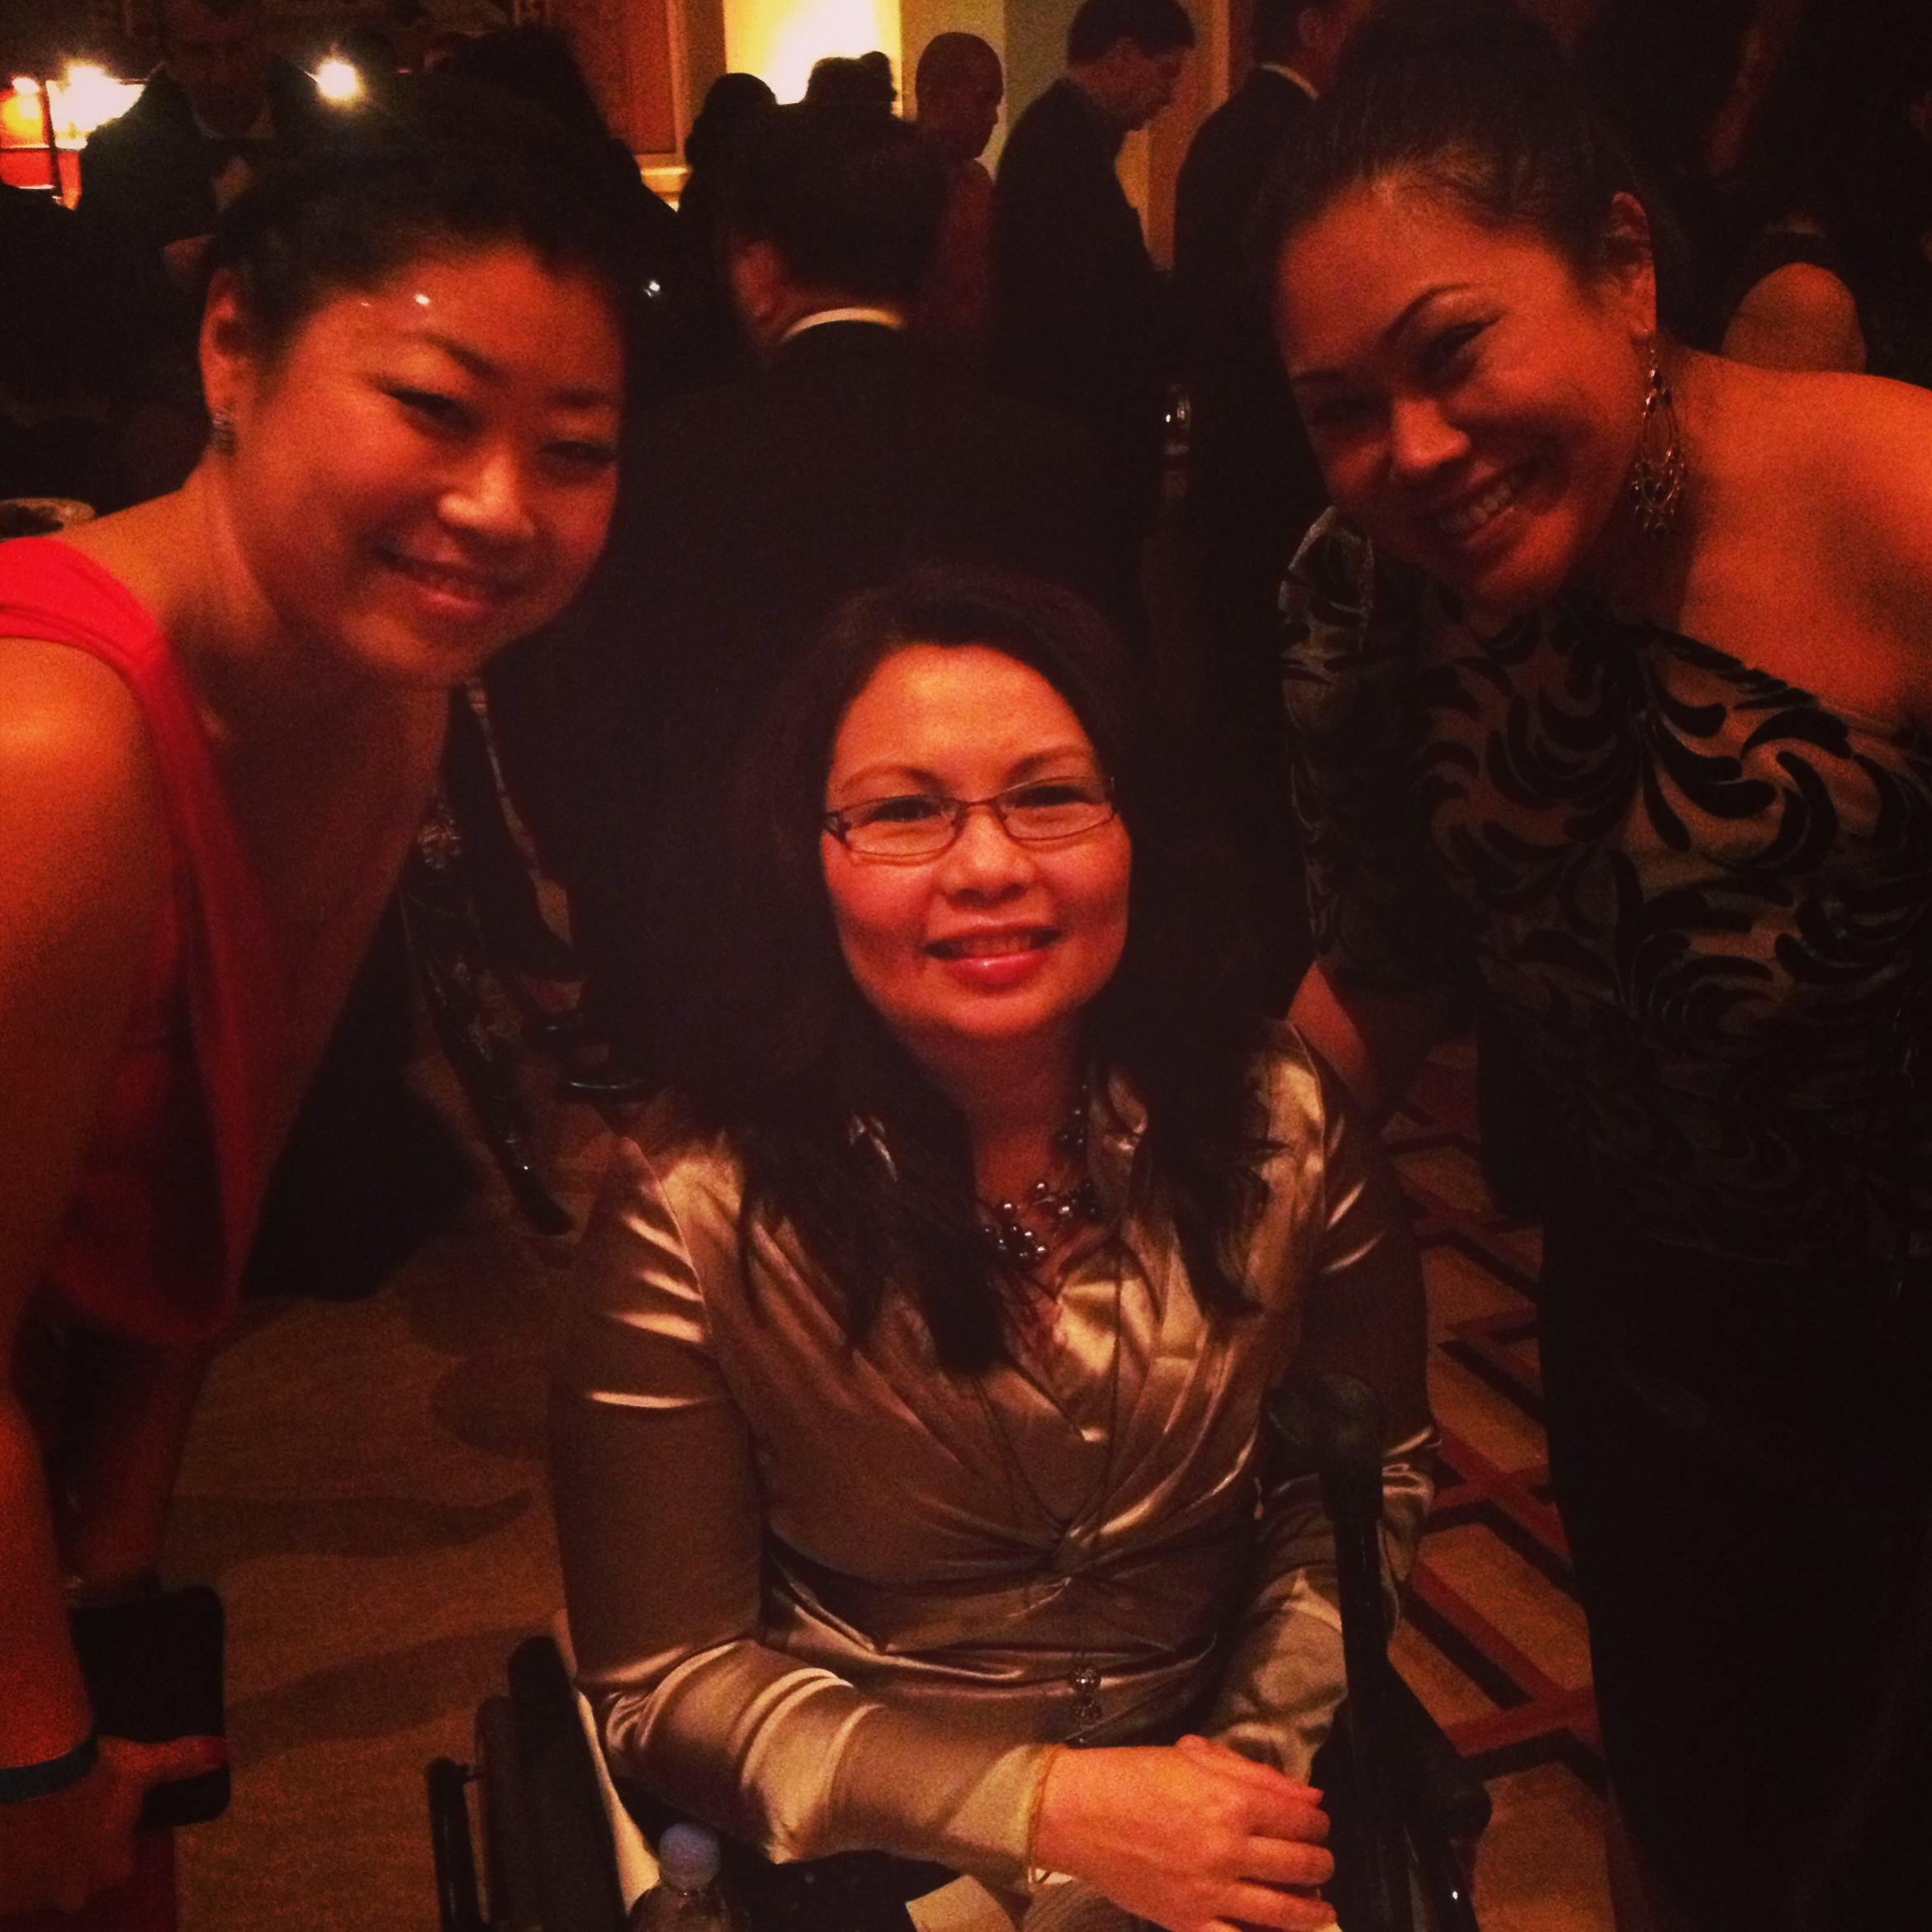 From left: 18MR's Jenn Pae, Congresswoman Tammy Duckworth, Genevieve Villafranca Jopanda of KAYA: Filipino Americans for Progress